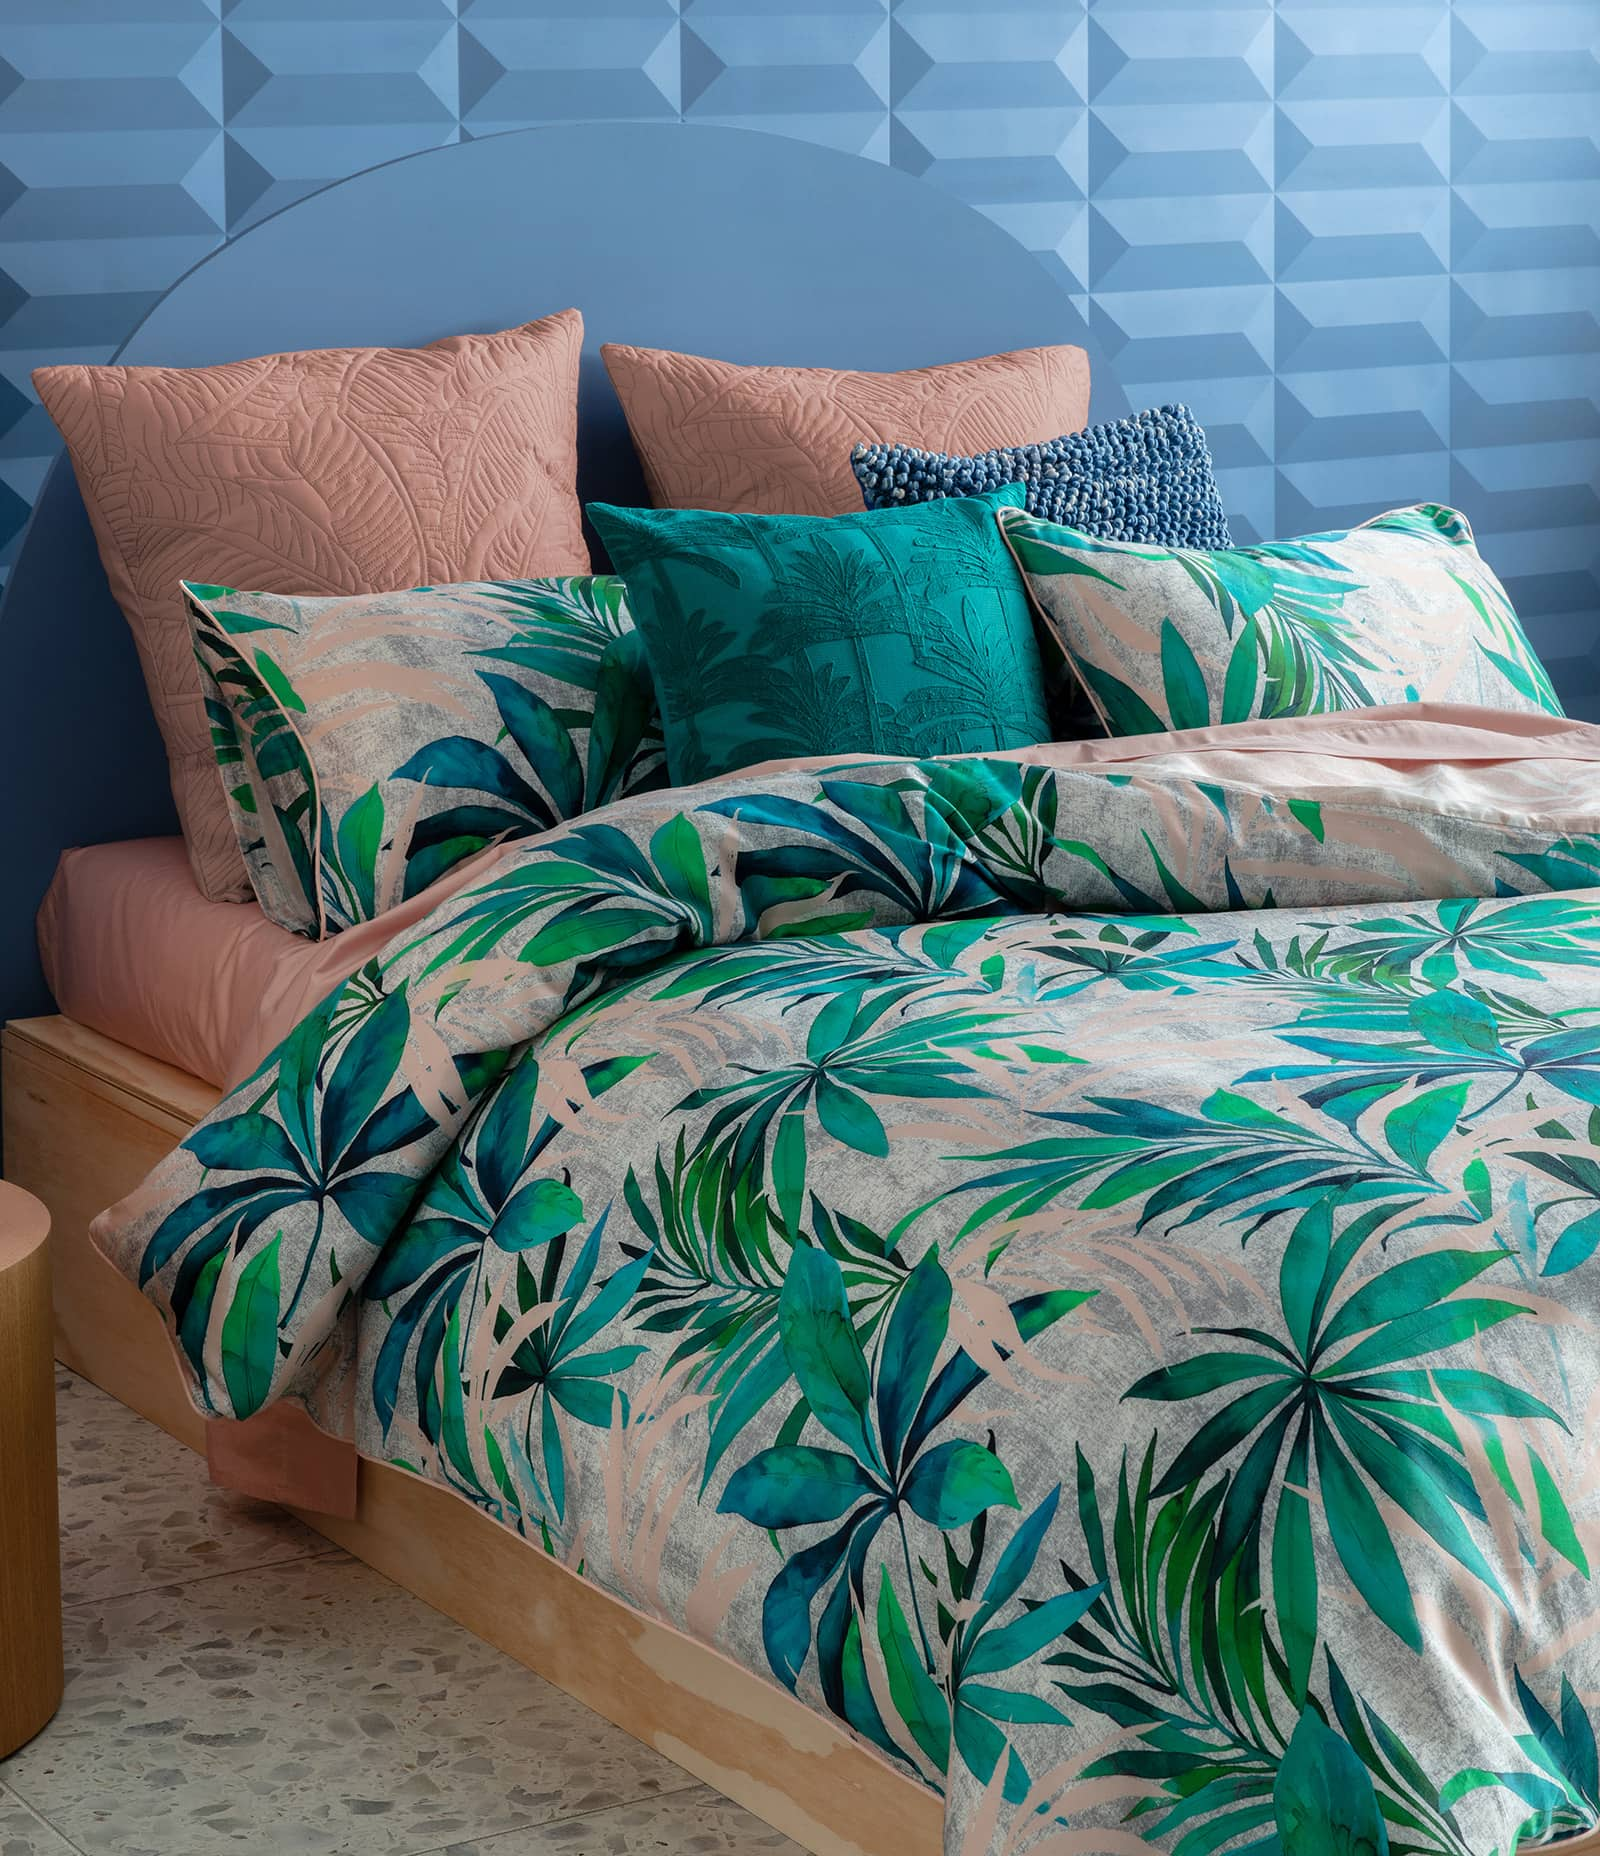 kas kurrajong tropical quilt cover set with green leaf pattern